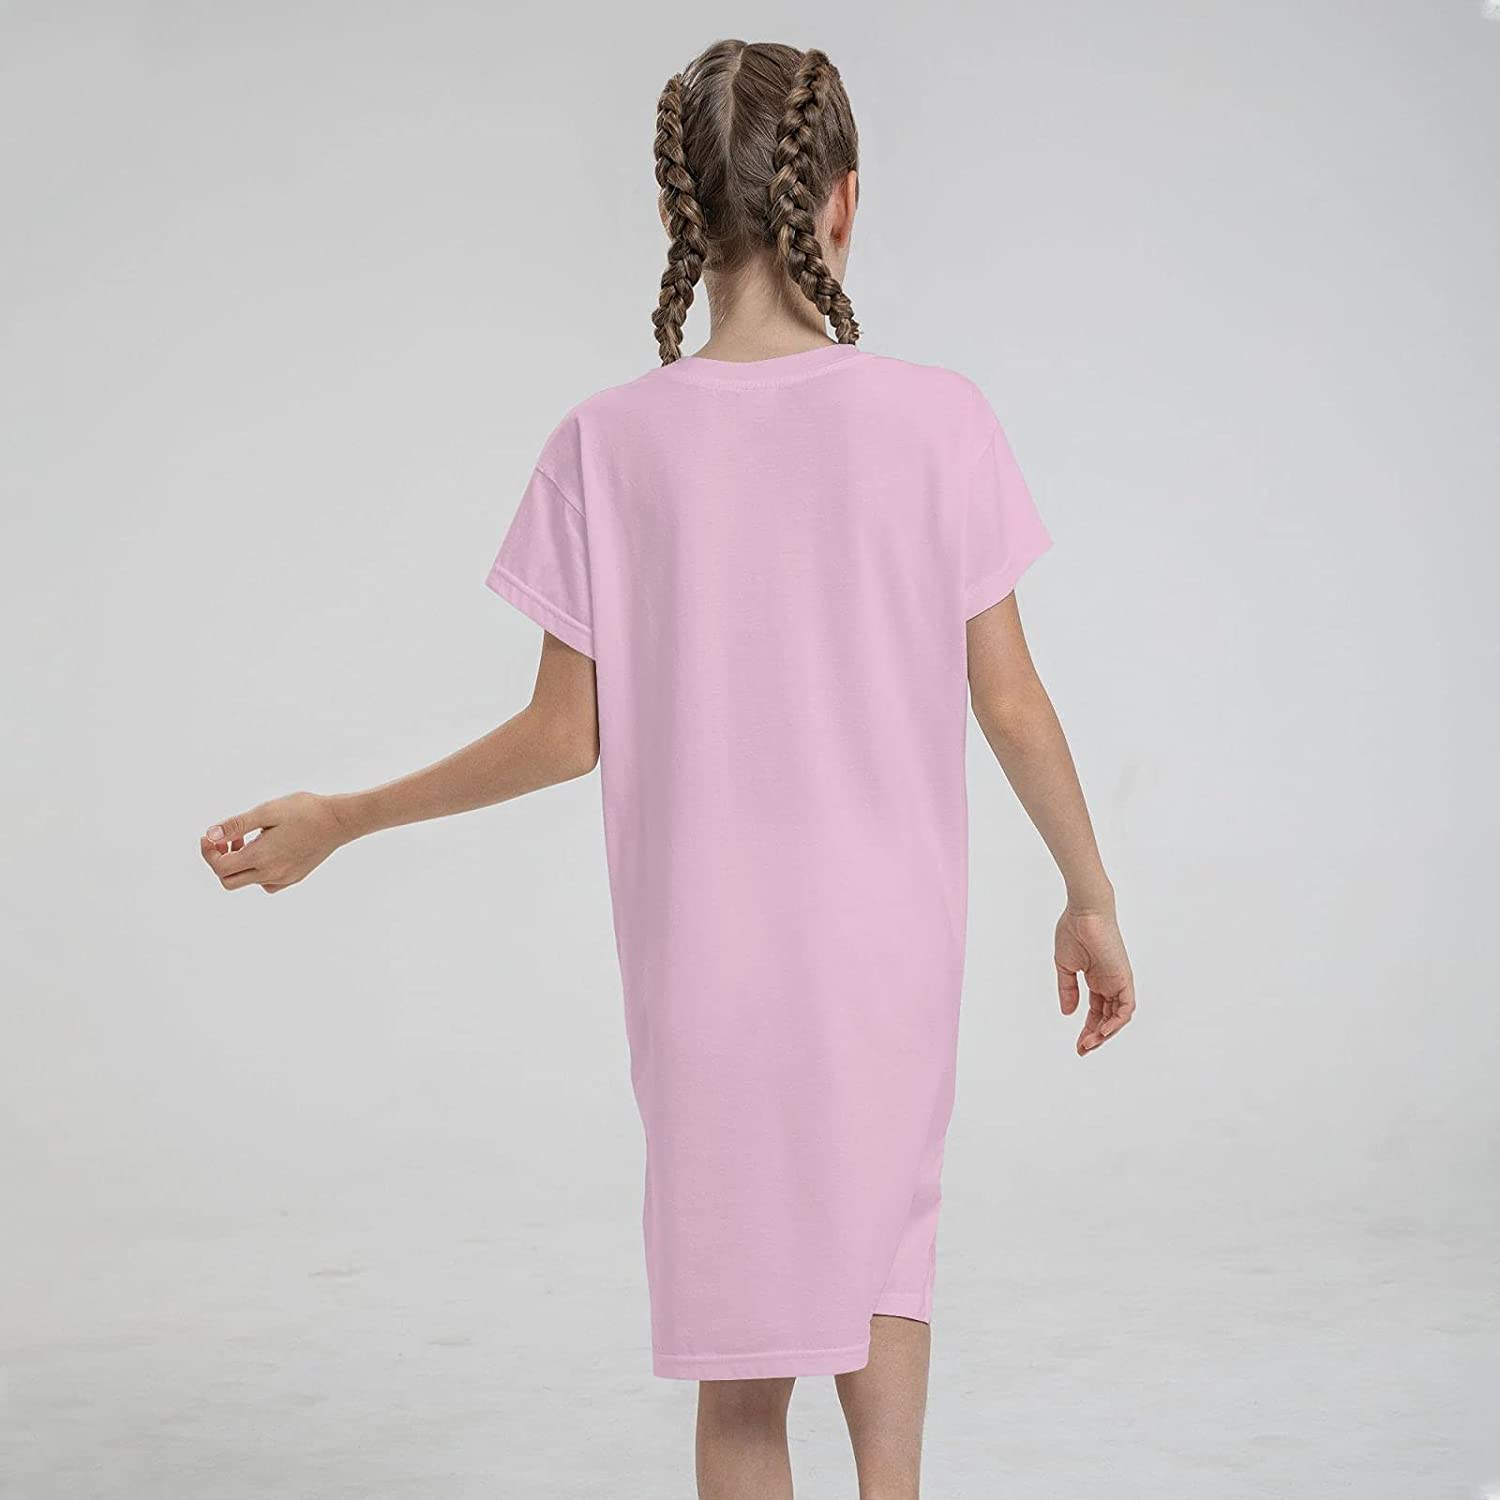 The Seven Deadly Sins Ban Girls Short Sleeve Dress Casual Swing Twirl Skirt for Holiday Theme Party 7-12 Years